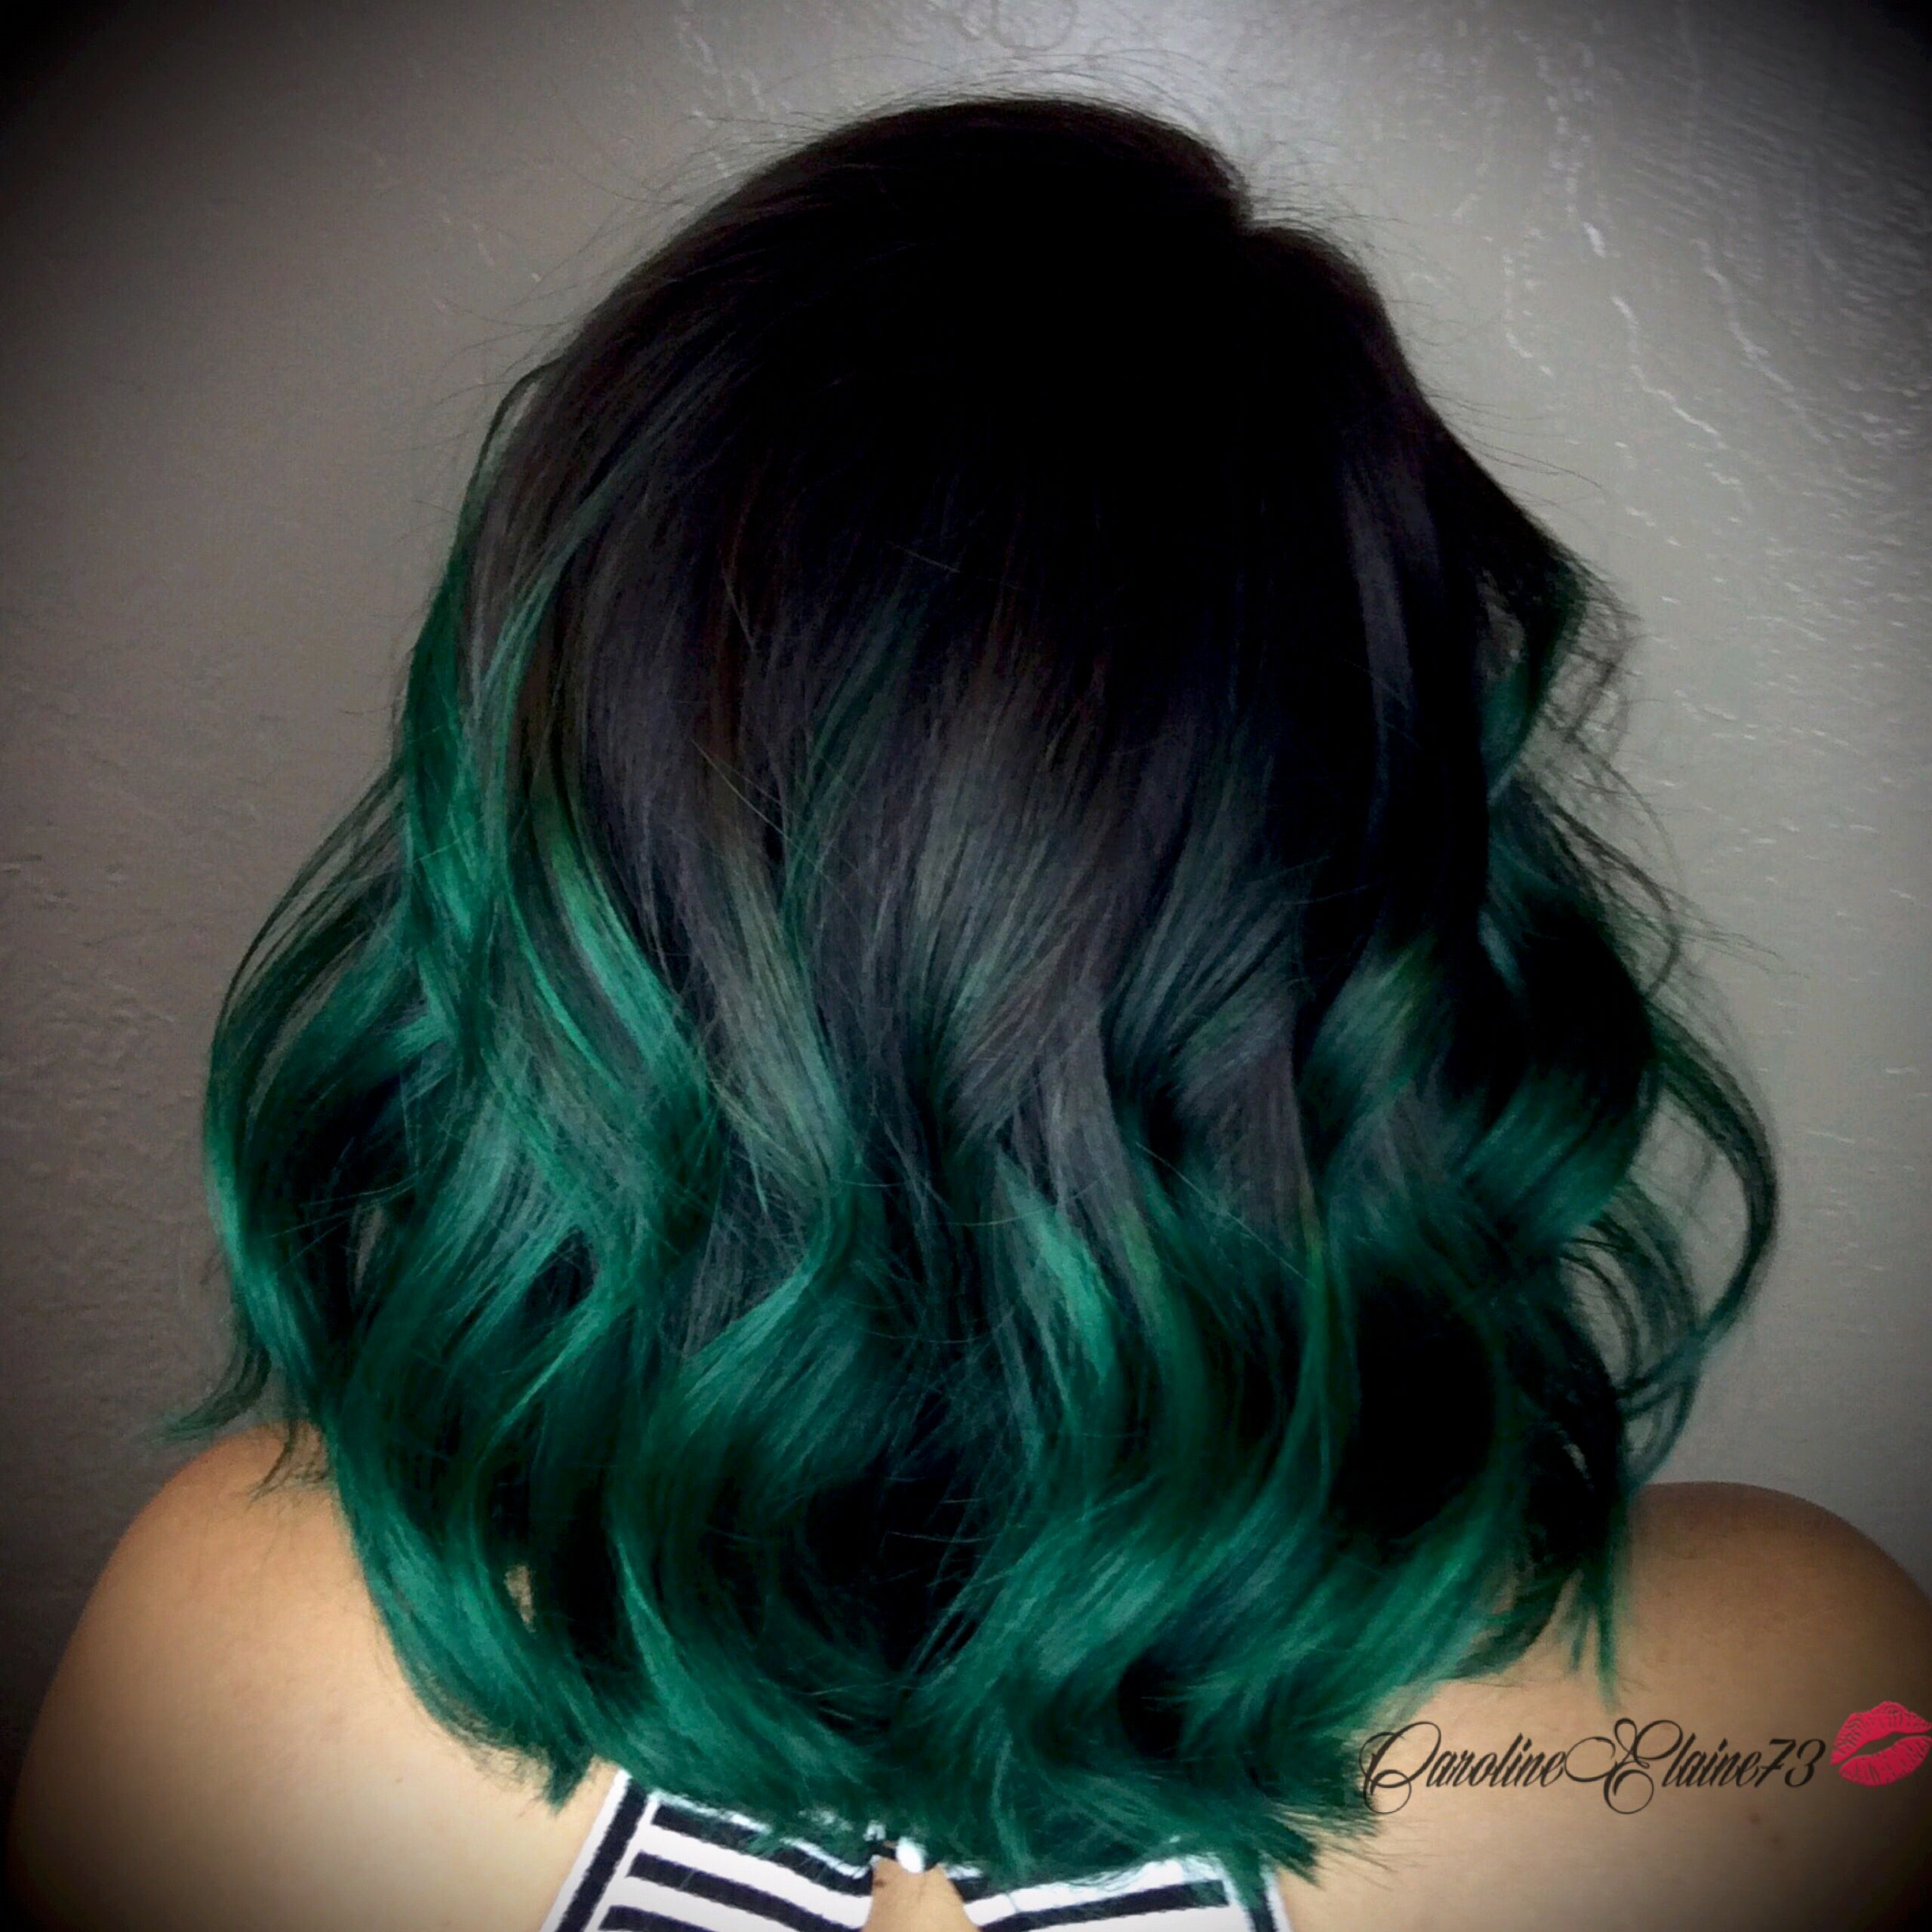 emerald green ombr233 hair hair and makeup pinterest